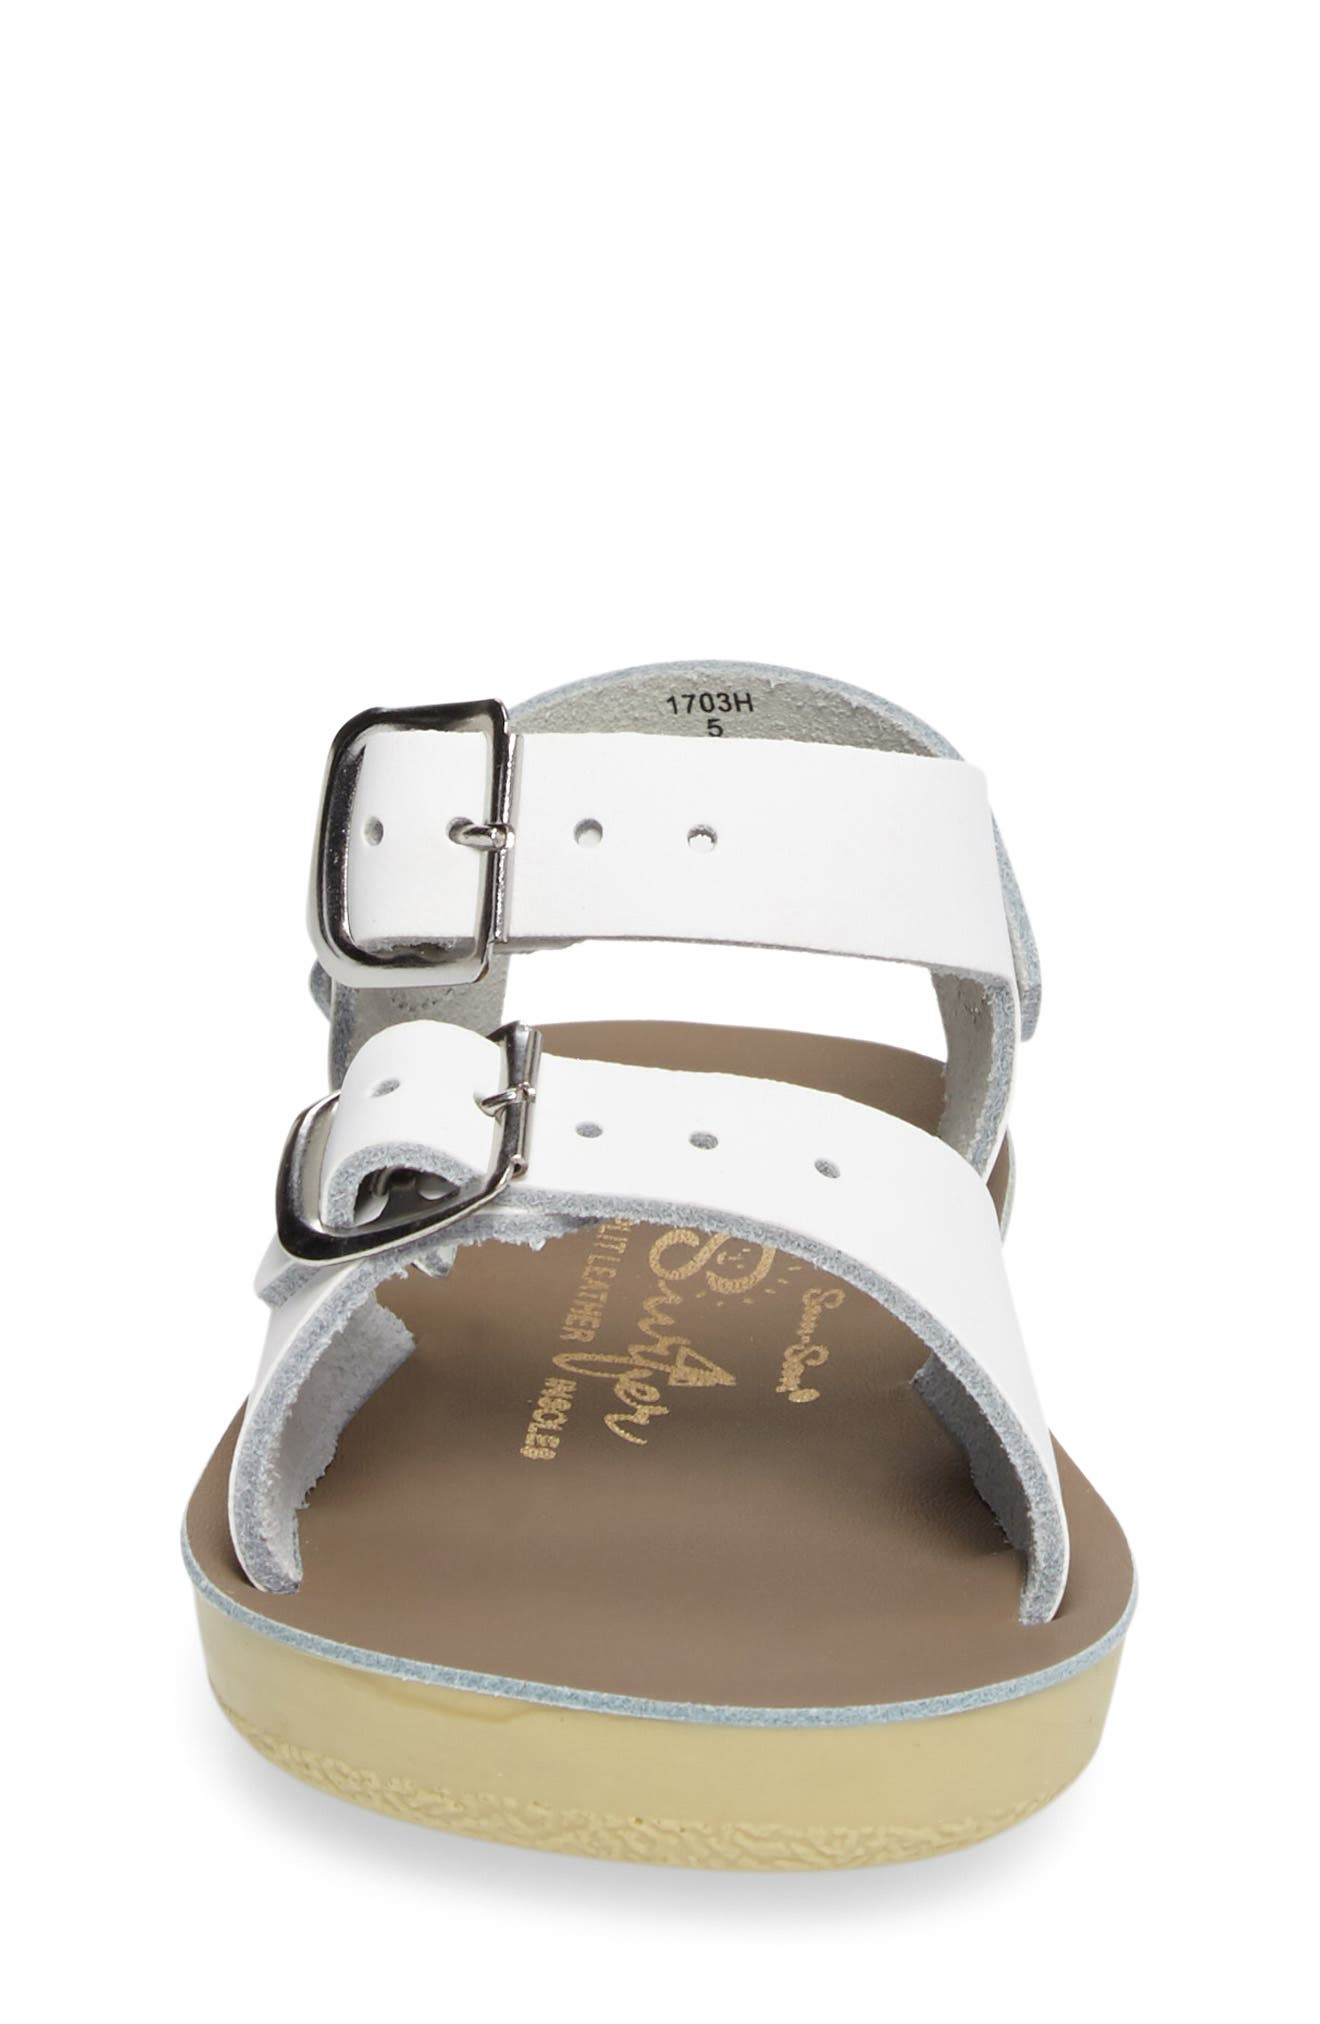 Alternate Image 4  - Salt Water Sandals by Hoy 'Surfer' Sandal (Baby, Walker, Toddler & Little Kid)